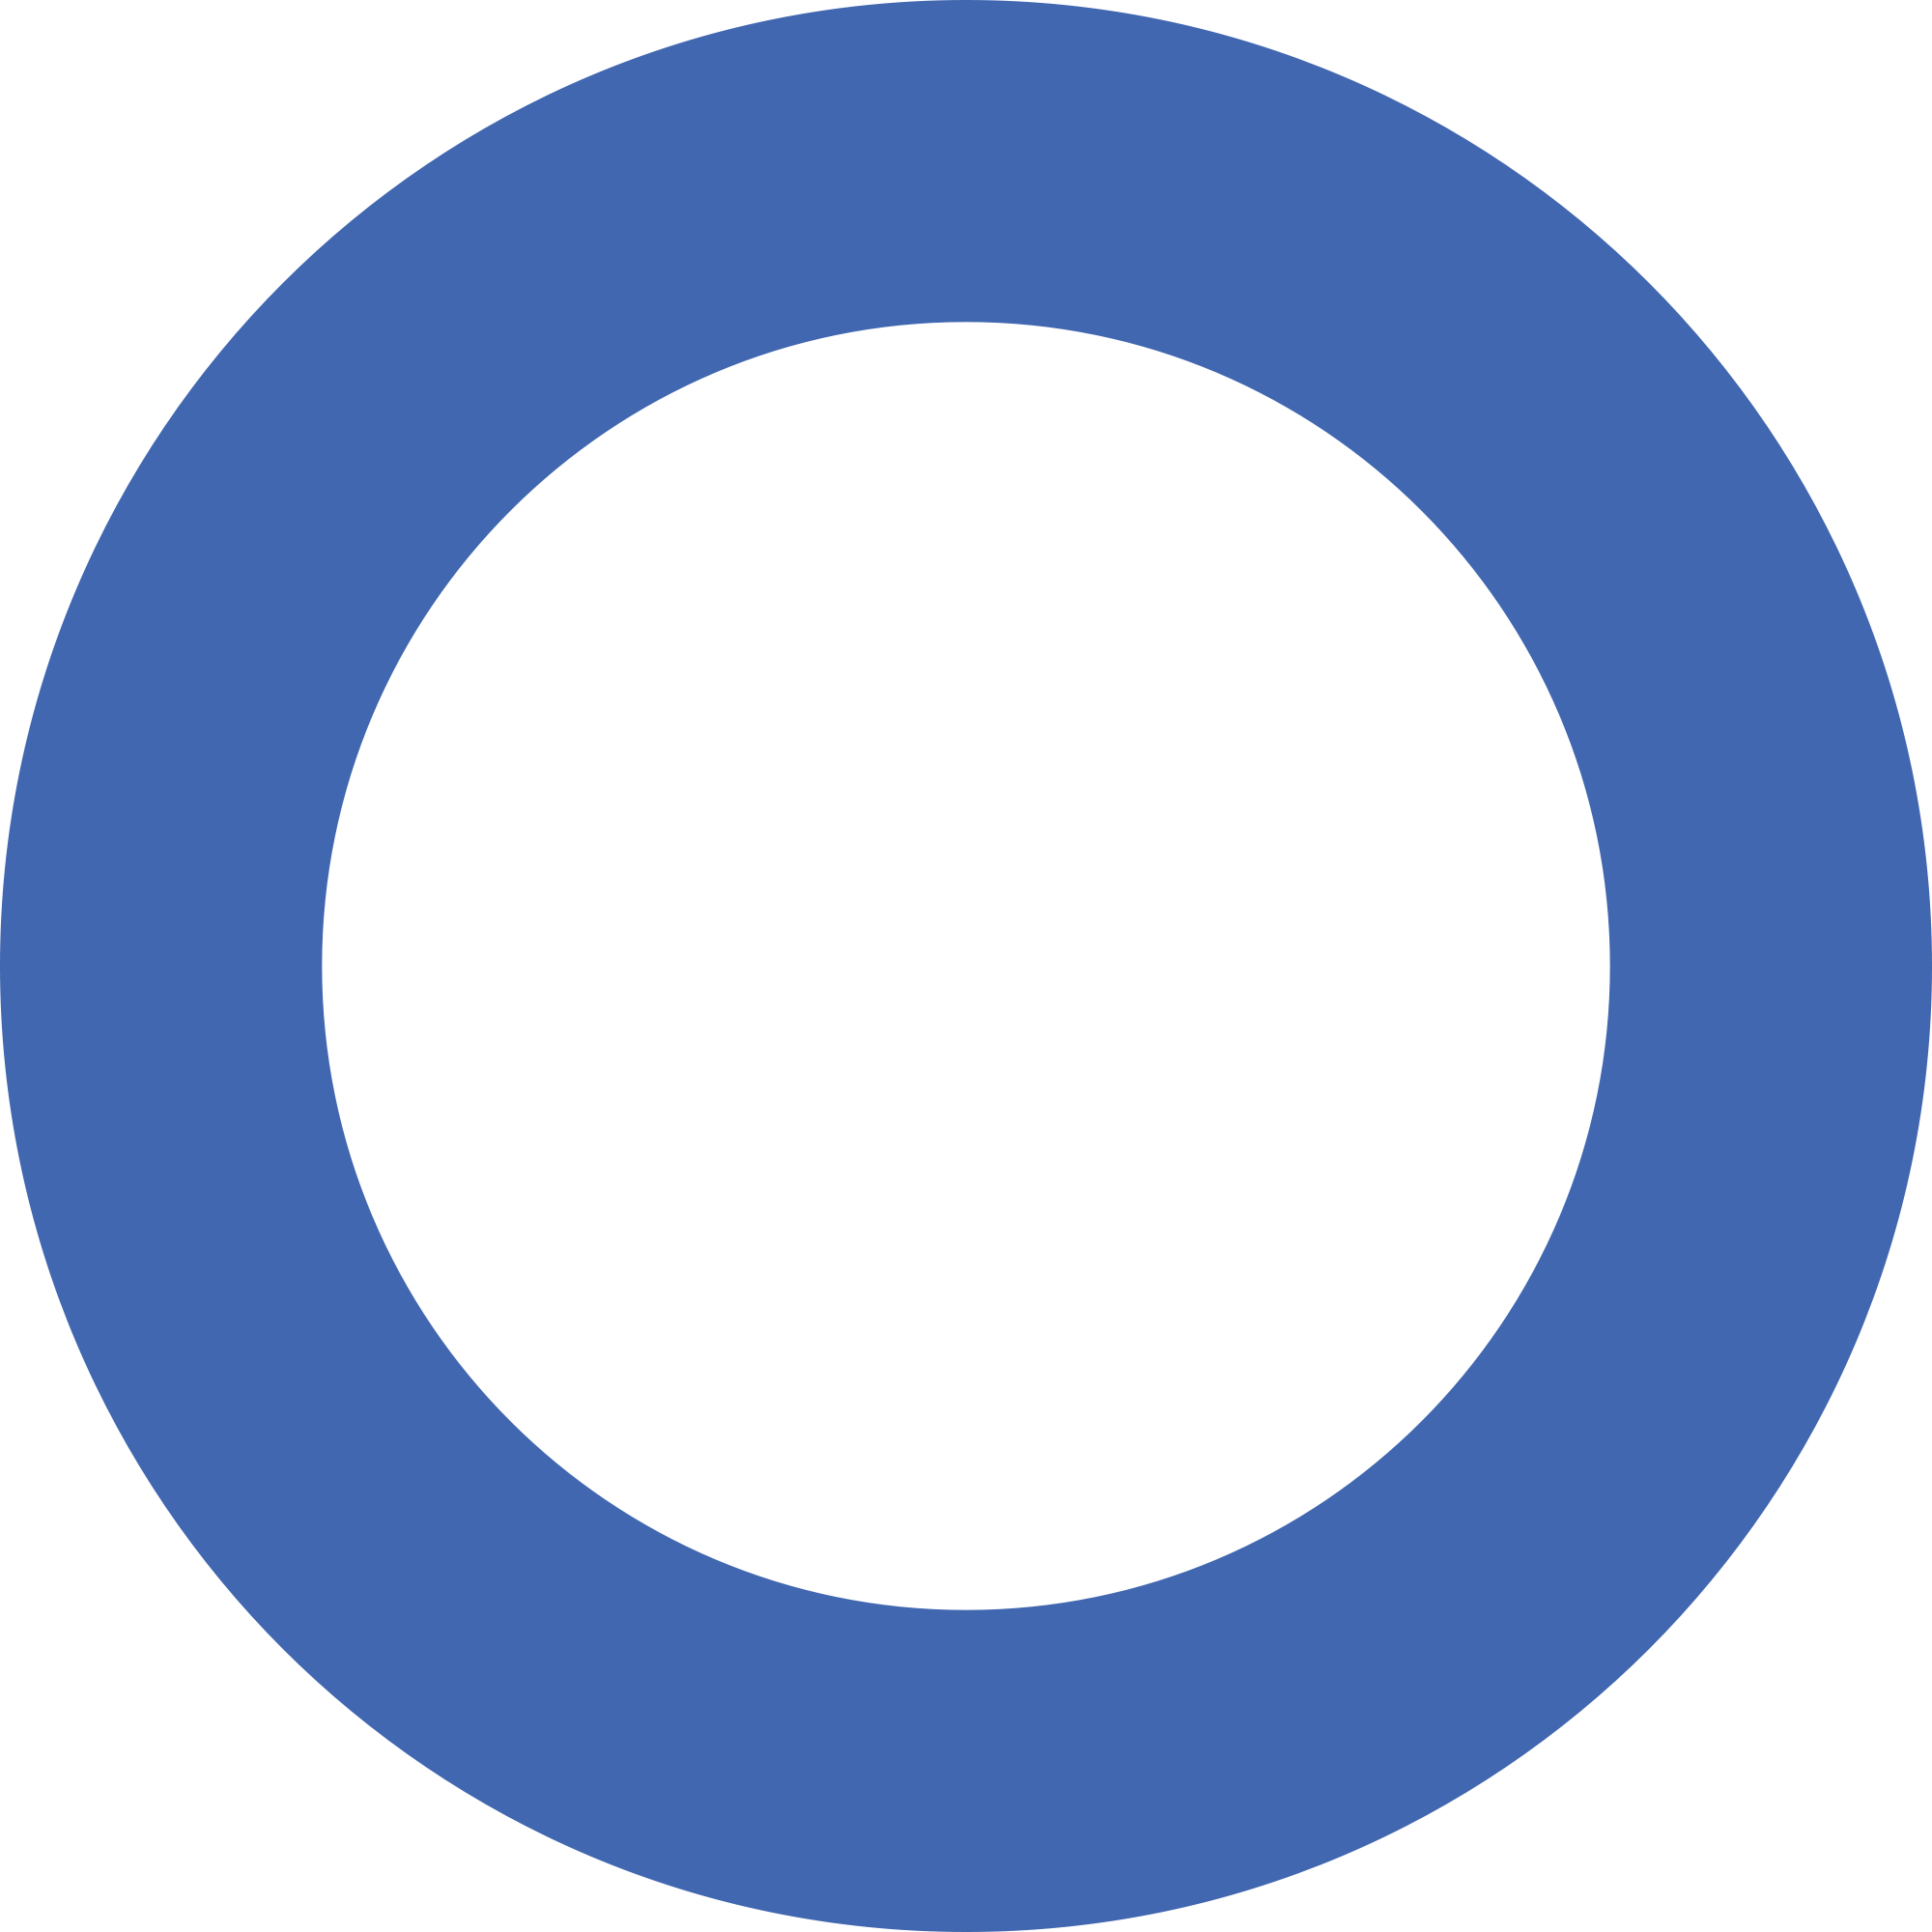 Circle background png. File white in blue